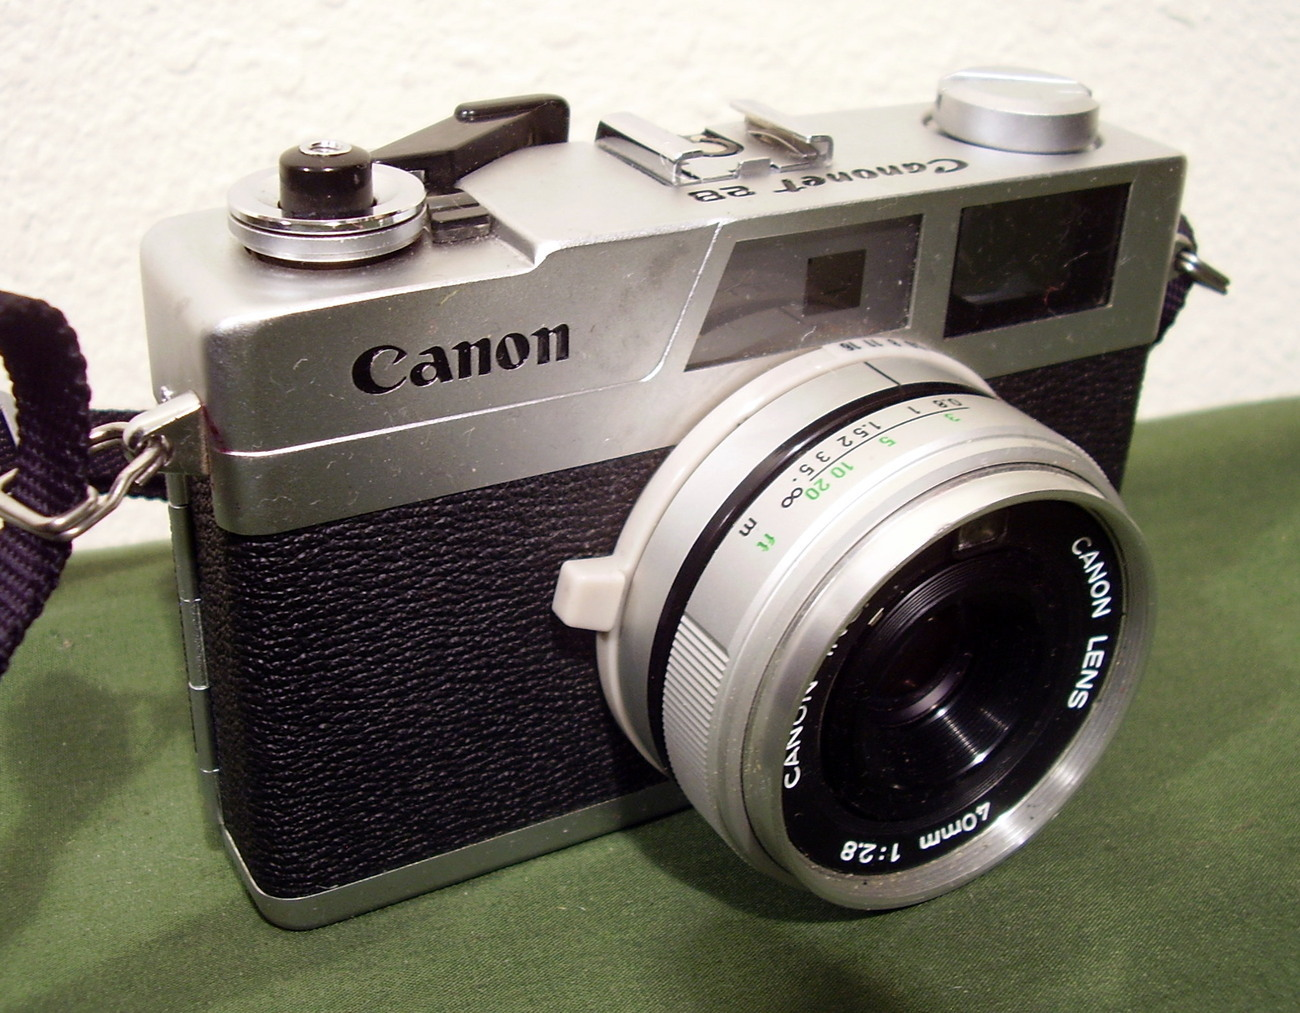 Canon Canonet 28 35mm Compact Rangefinder Camera